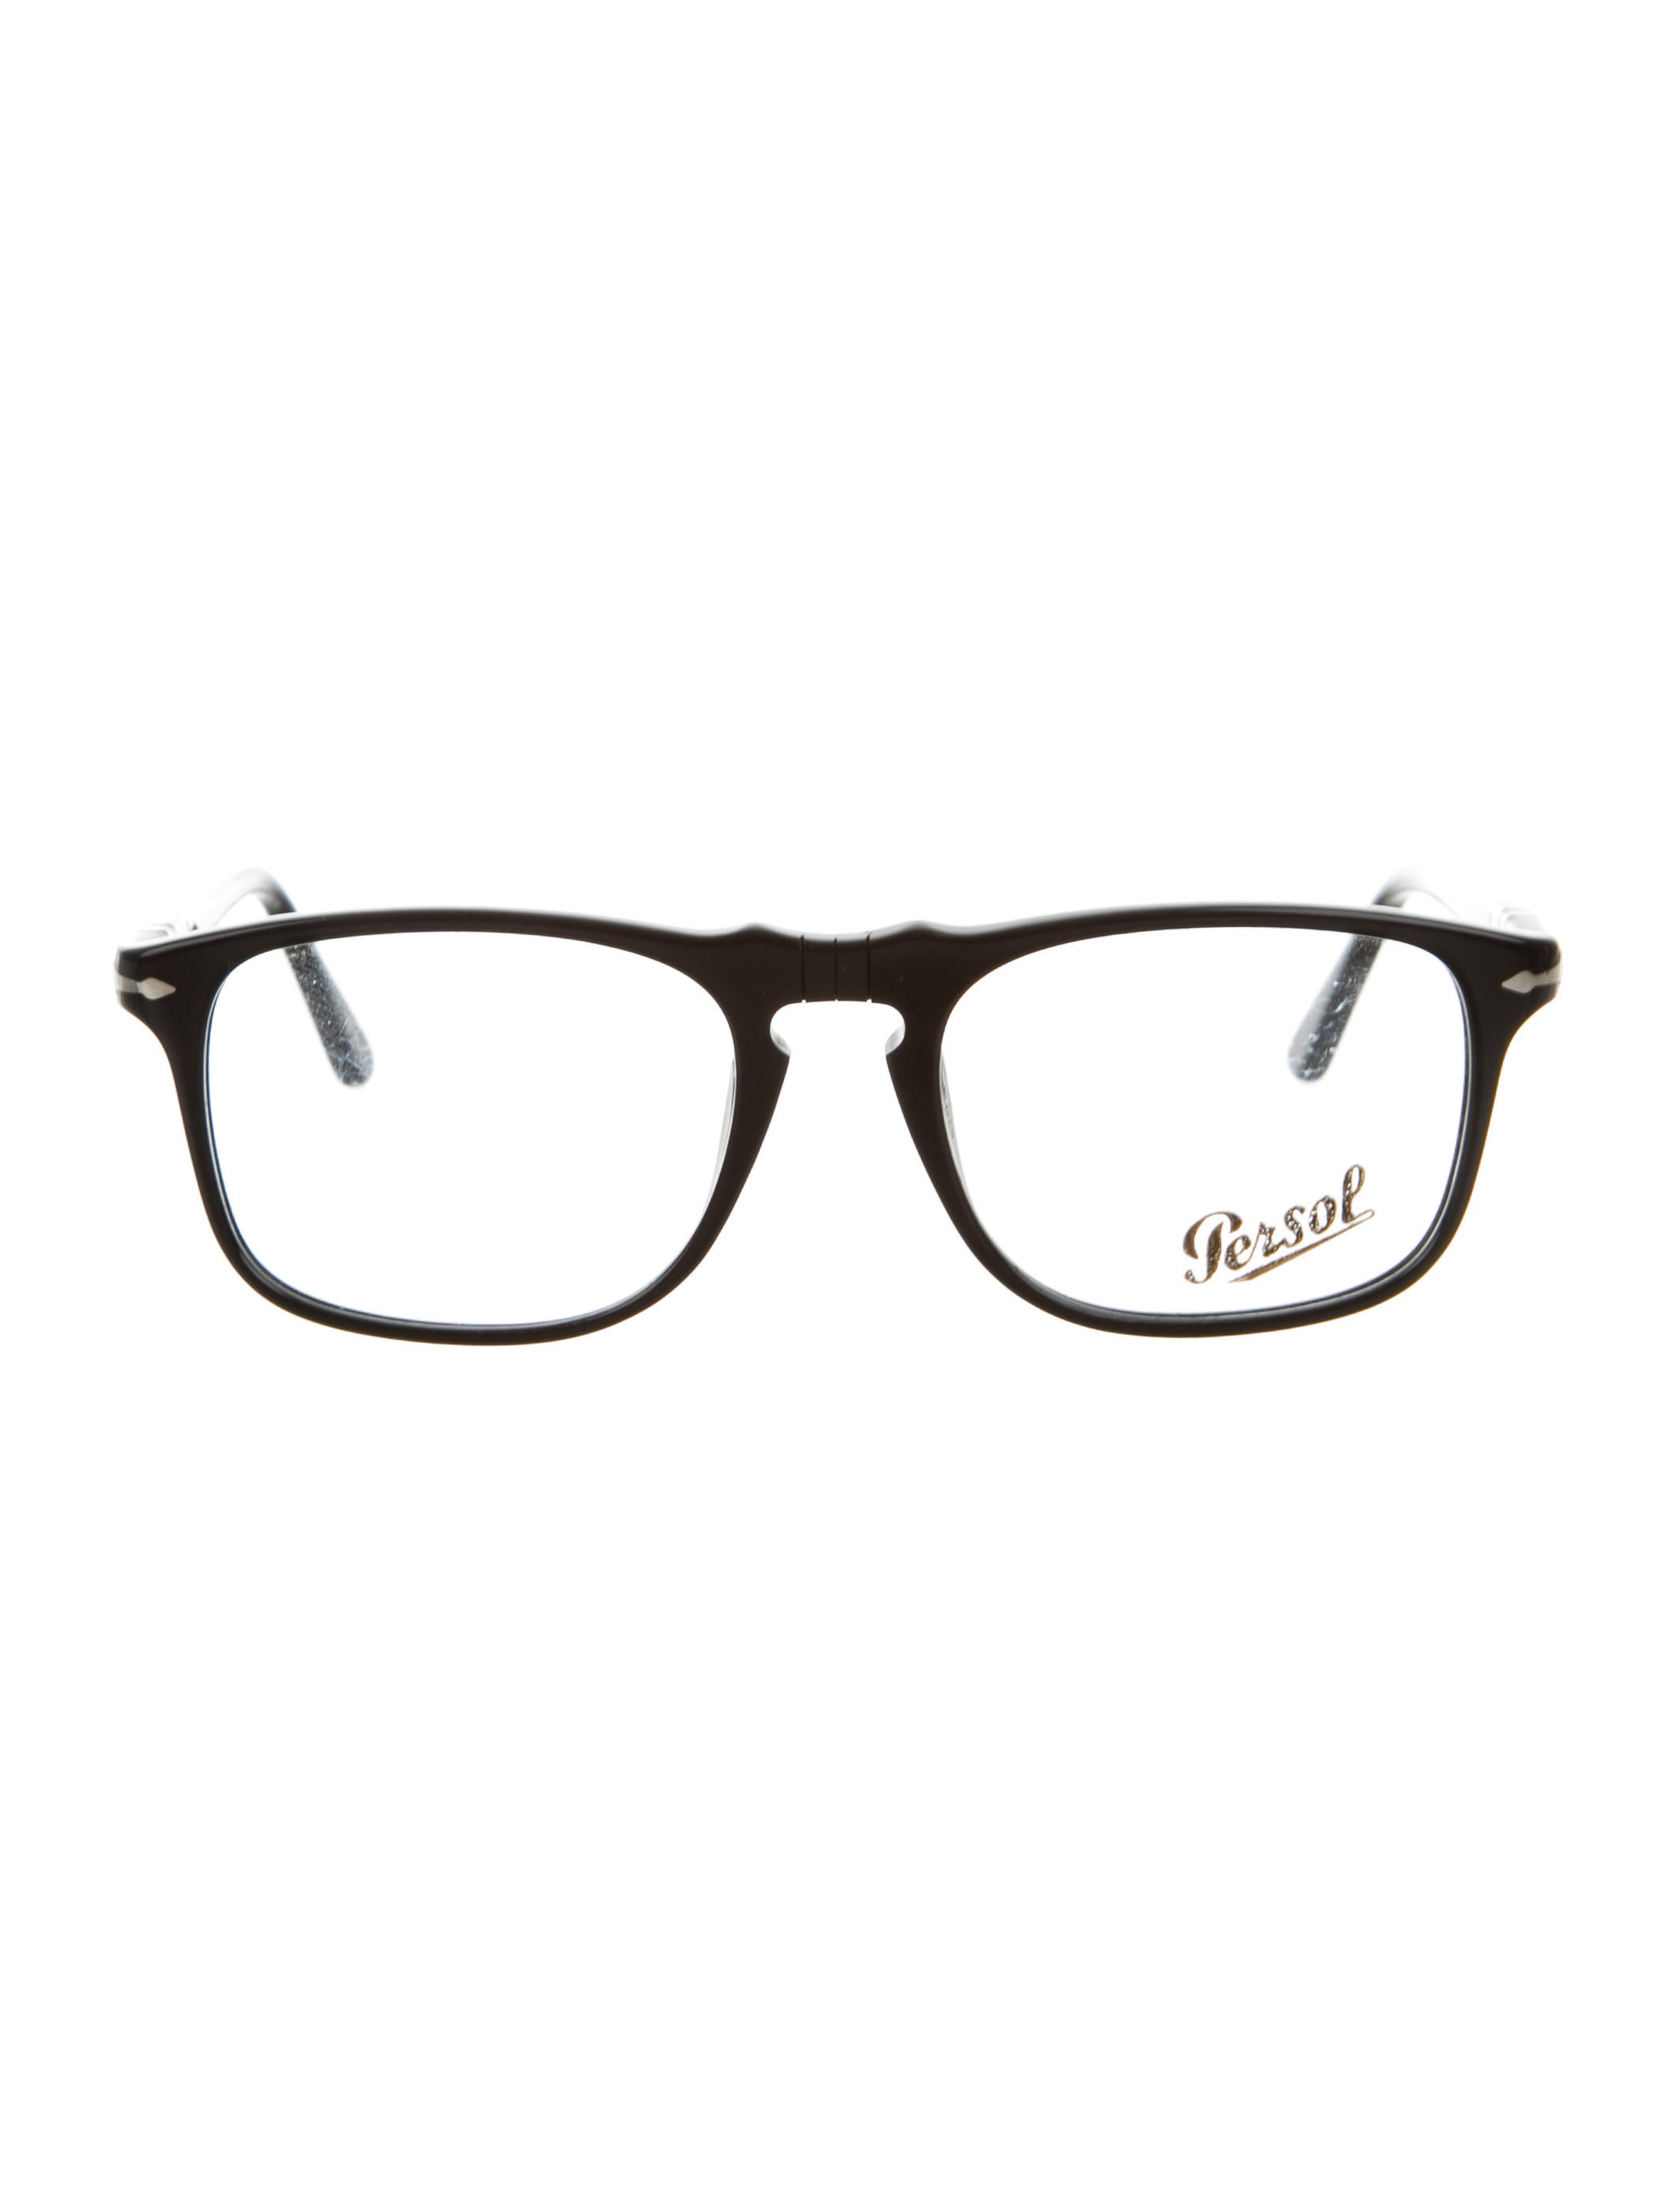 persol logo square eyeglasses accessories prs20627